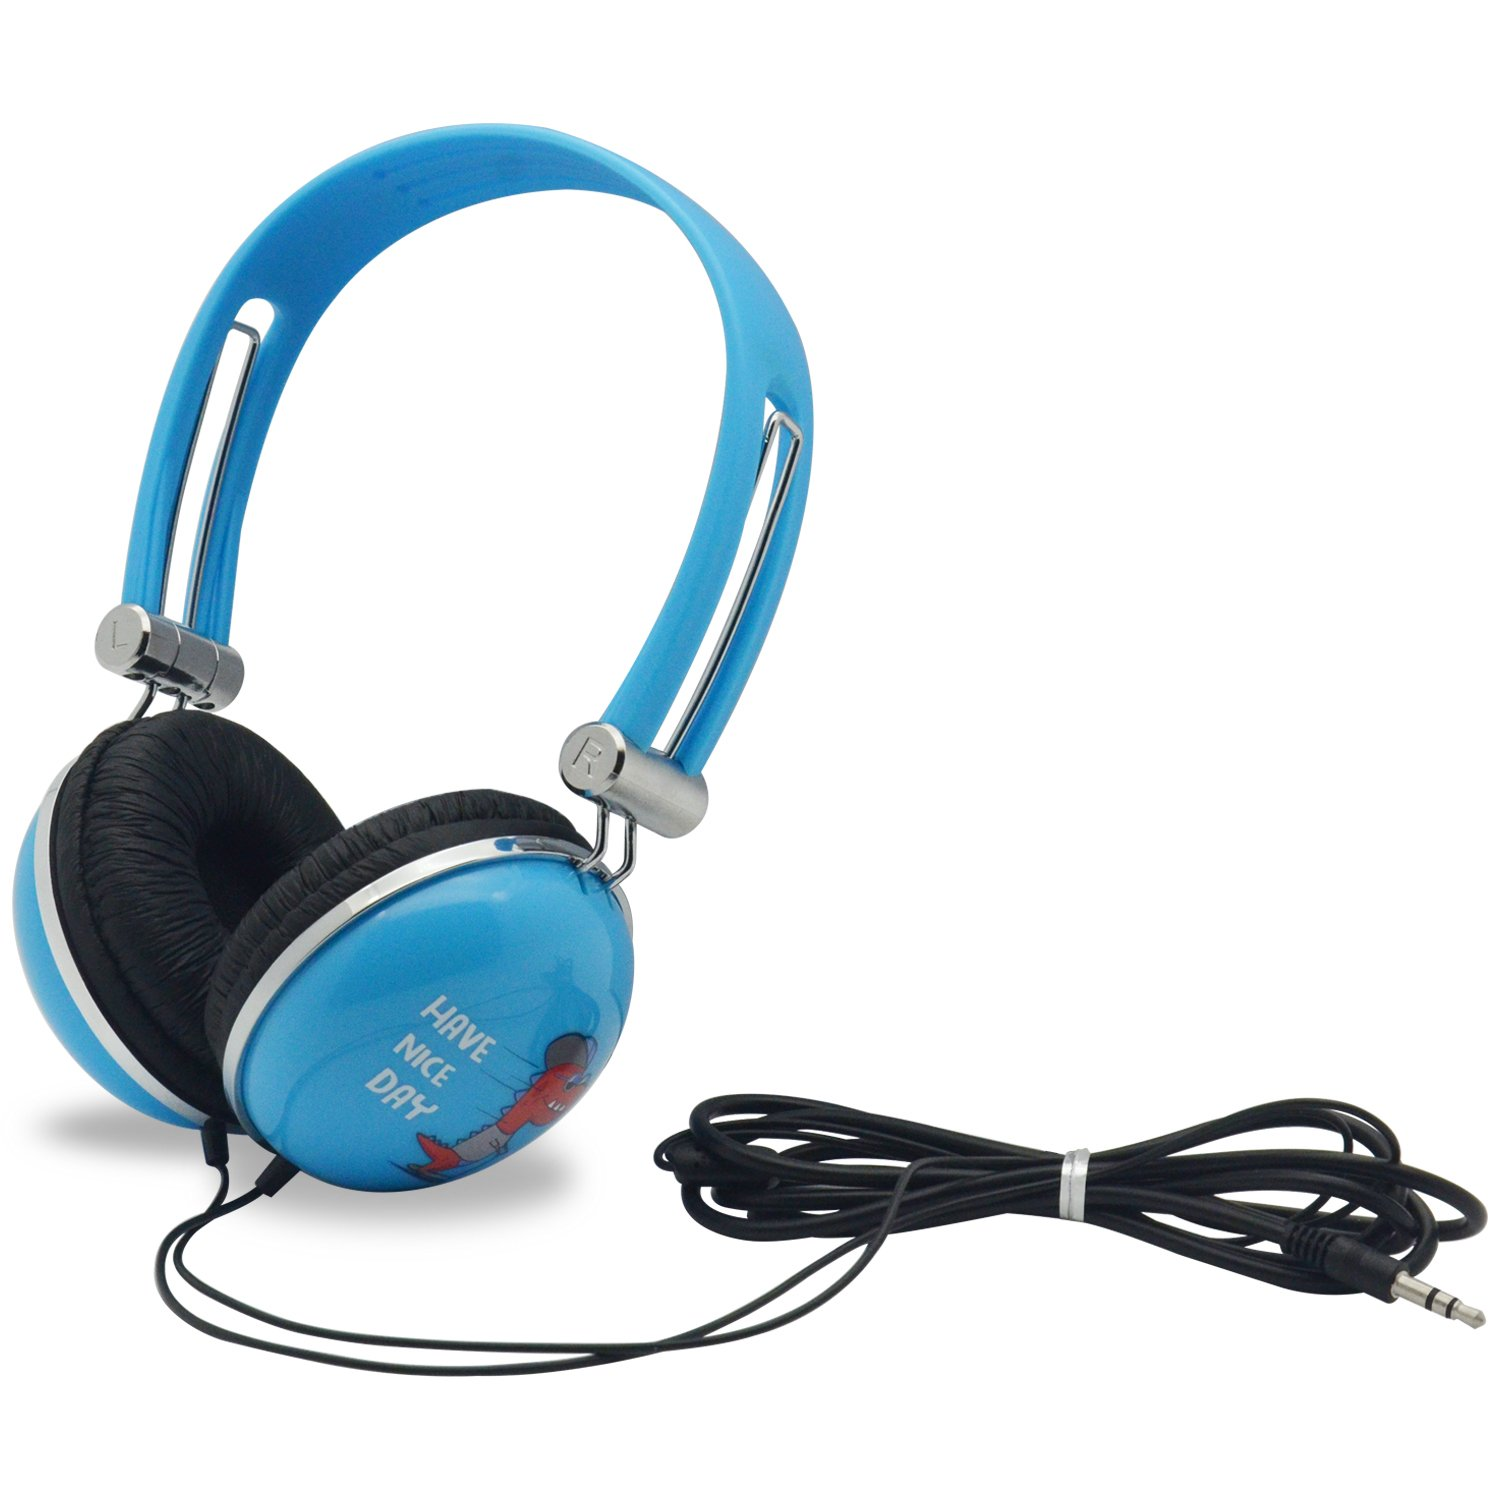 WONNIE Headset for Portable DVD Player, PC, mobile phone, Cartoon Headphone (Blue) by WONNIE